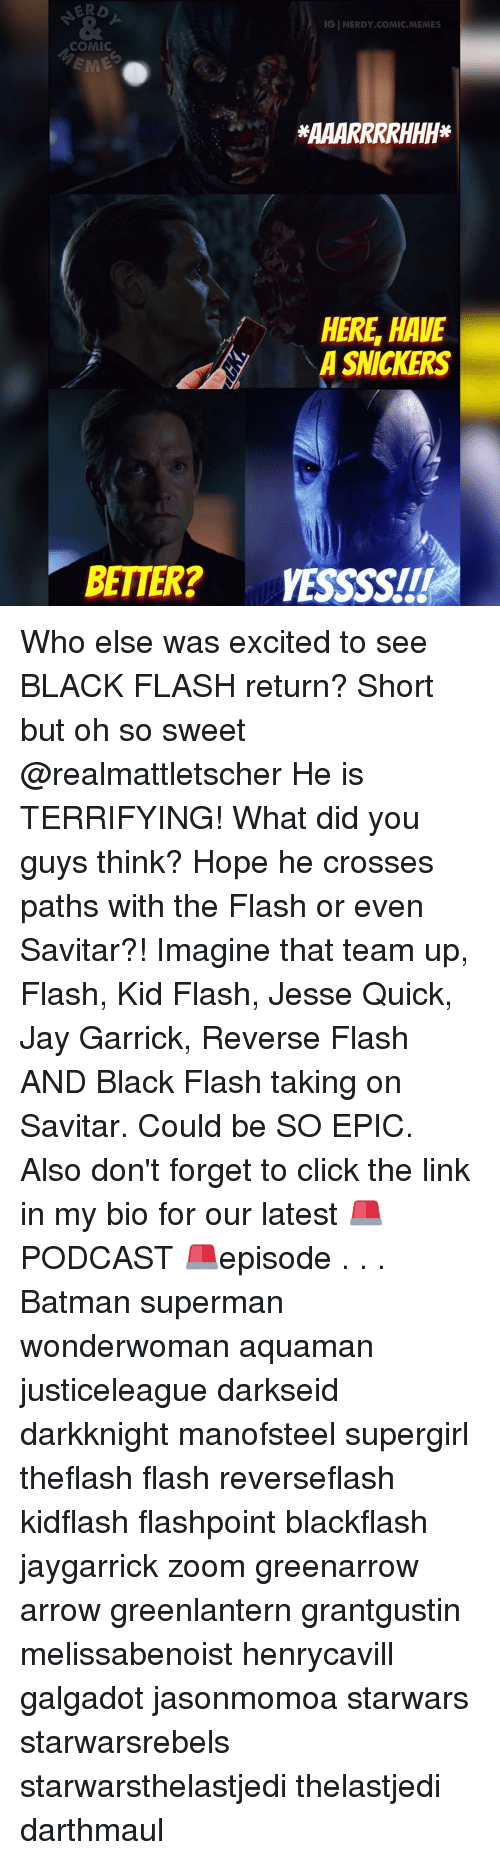 Memes, Zoom, and The Flash: IGINERDY COMIC MEMES  COMIC  HERE HAVE  A SNICKERS  BETTER? VESSSSITI Who else was excited to see BLACK FLASH return? Short but oh so sweet @realmattletscher He is TERRIFYING! What did you guys think? Hope he crosses paths with the Flash or even Savitar?! Imagine that team up, Flash, Kid Flash, Jesse Quick, Jay Garrick, Reverse Flash AND Black Flash taking on Savitar. Could be SO EPIC. Also don't forget to click the link in my bio for our latest 🚨PODCAST 🚨episode . . . Batman superman wonderwoman aquaman justiceleague darkseid darkknight manofsteel supergirl theflash flash reverseflash kidflash flashpoint blackflash jaygarrick zoom greenarrow arrow greenlantern grantgustin melissabenoist henrycavill galgadot jasonmomoa starwars starwarsrebels starwarsthelastjedi thelastjedi darthmaul